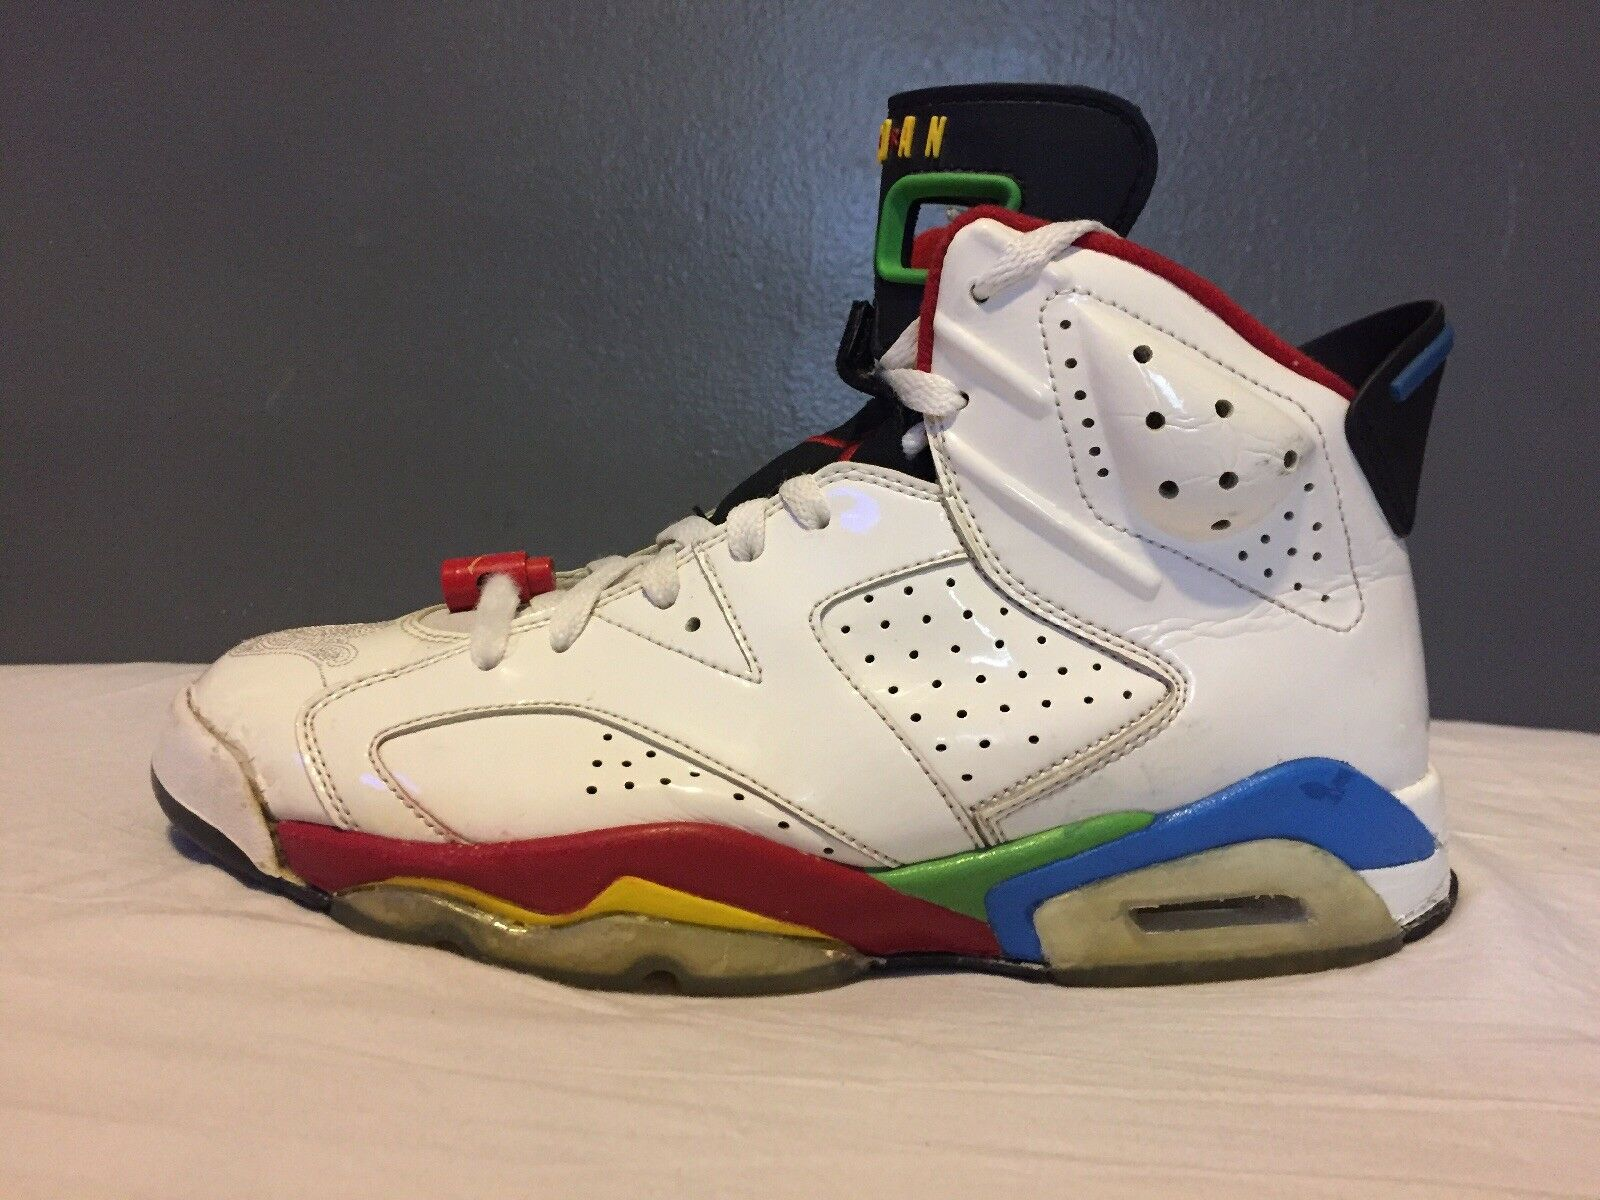 Nike Air Jordan 6 Retro  Price reduction  2008 Comfortable best-selling model of the brand